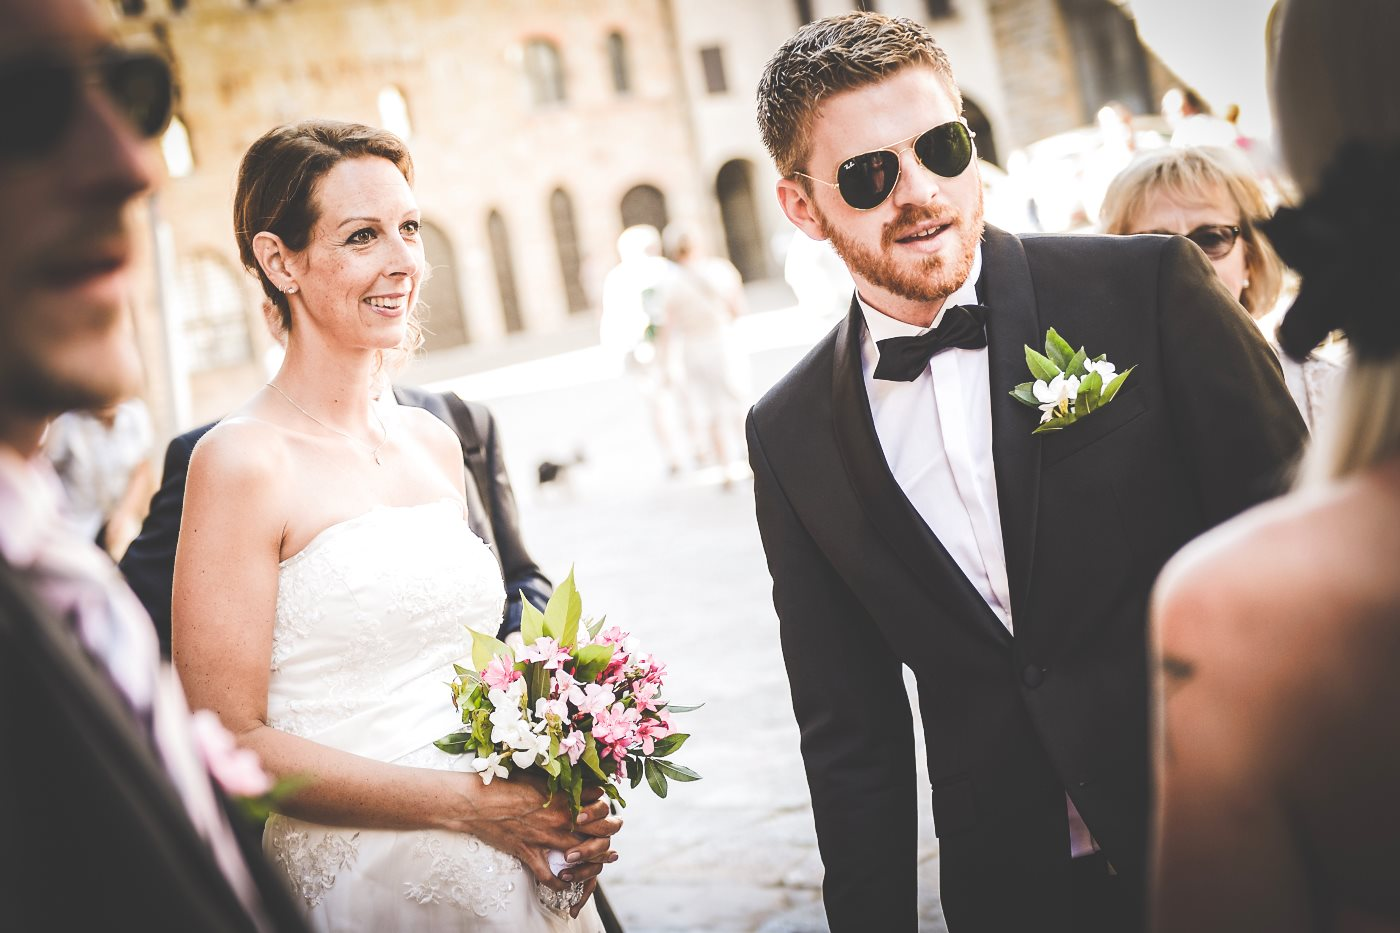 photographer_wedding_volterra_04.jpg